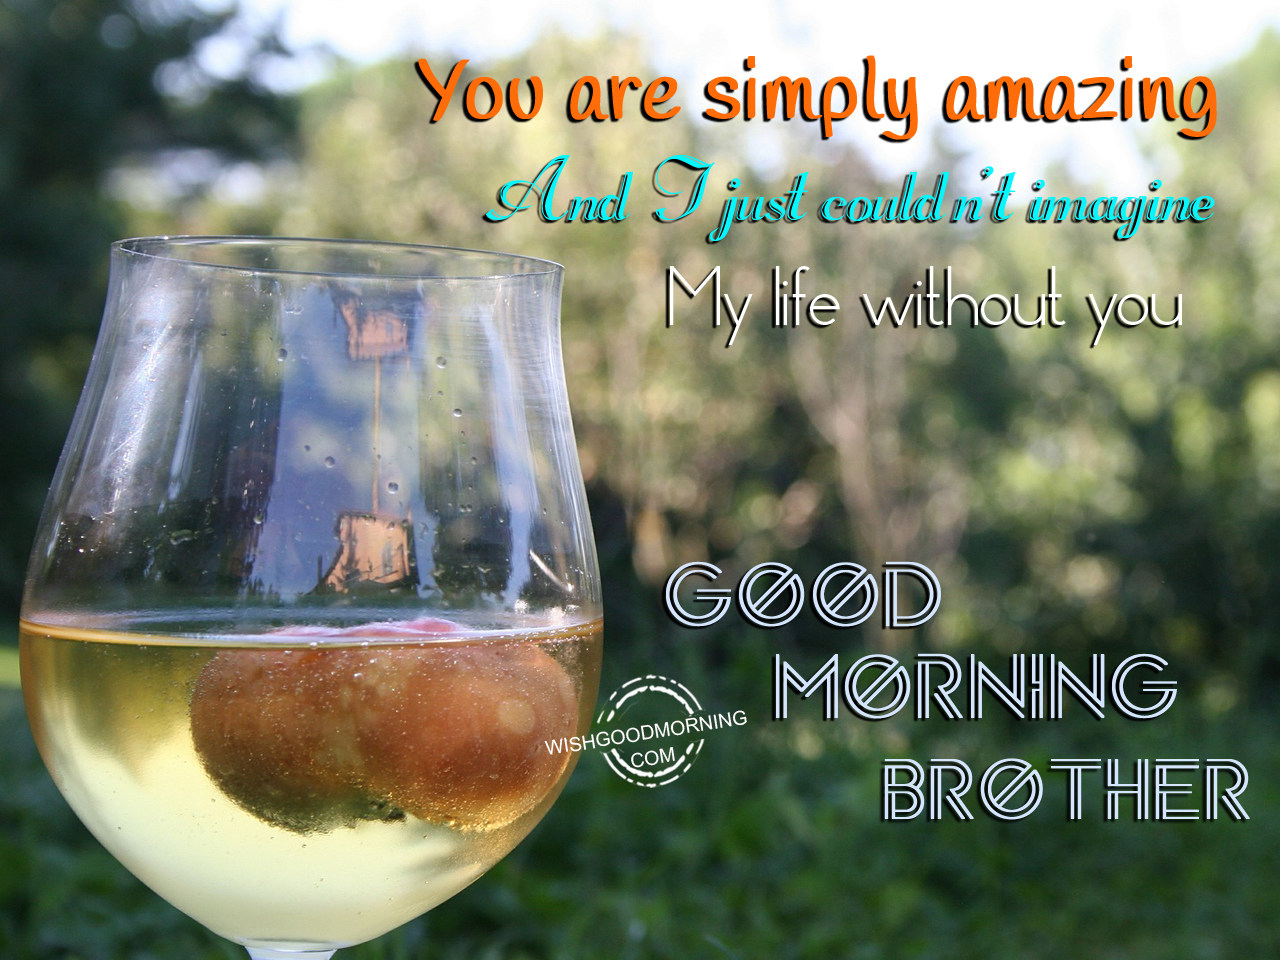 Good Morning You Are Amazing : Good morning wishes for brother pictures images